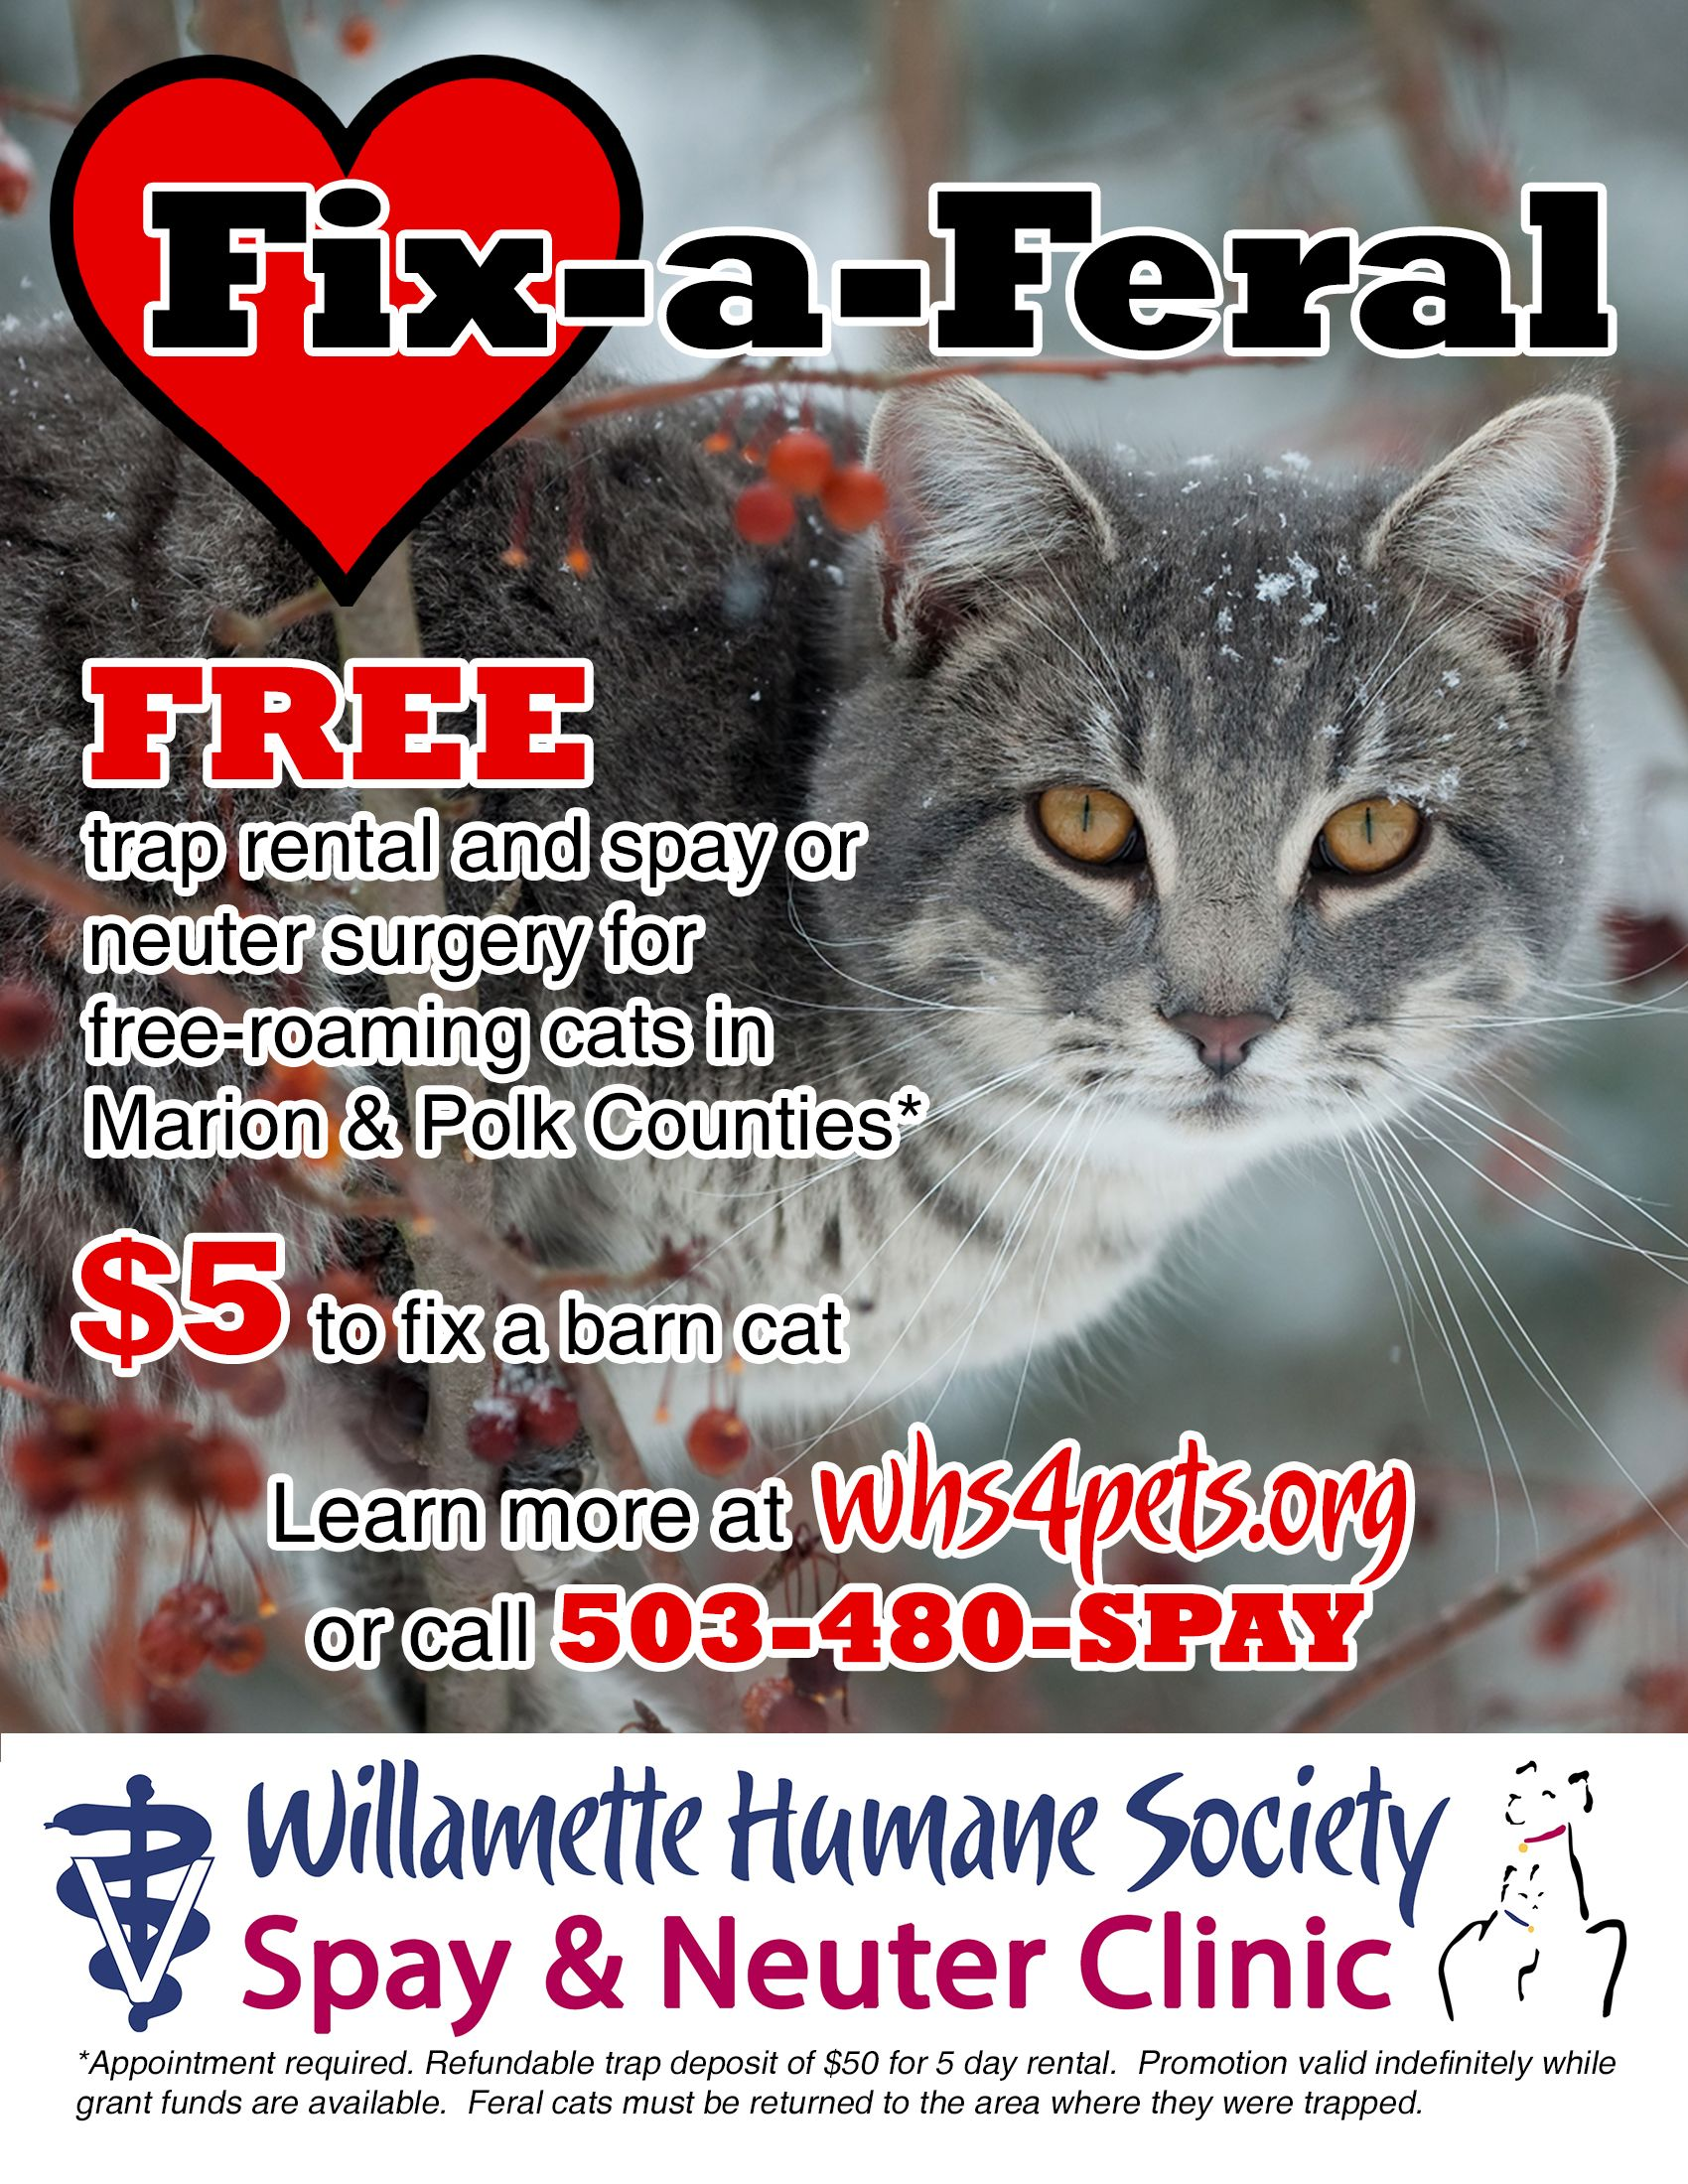 Free trap use and spay or neuter surgery for freeroaming